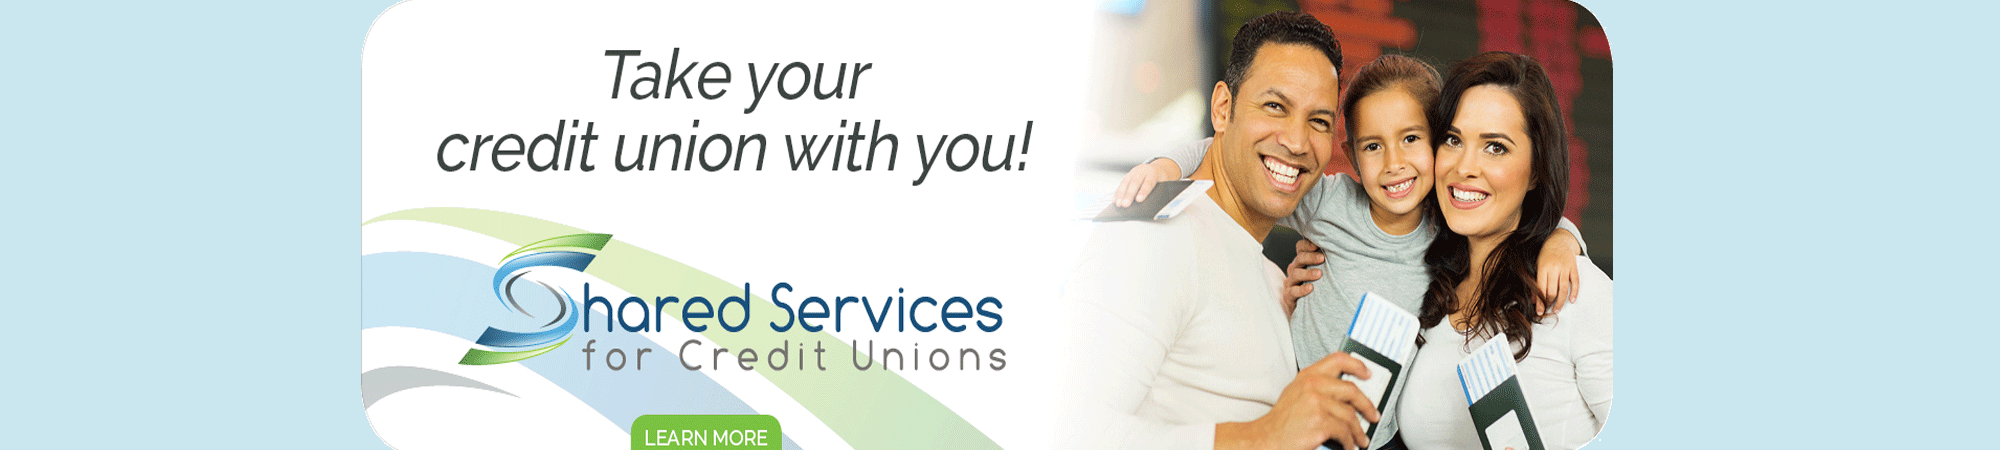 Take your credit union with you.